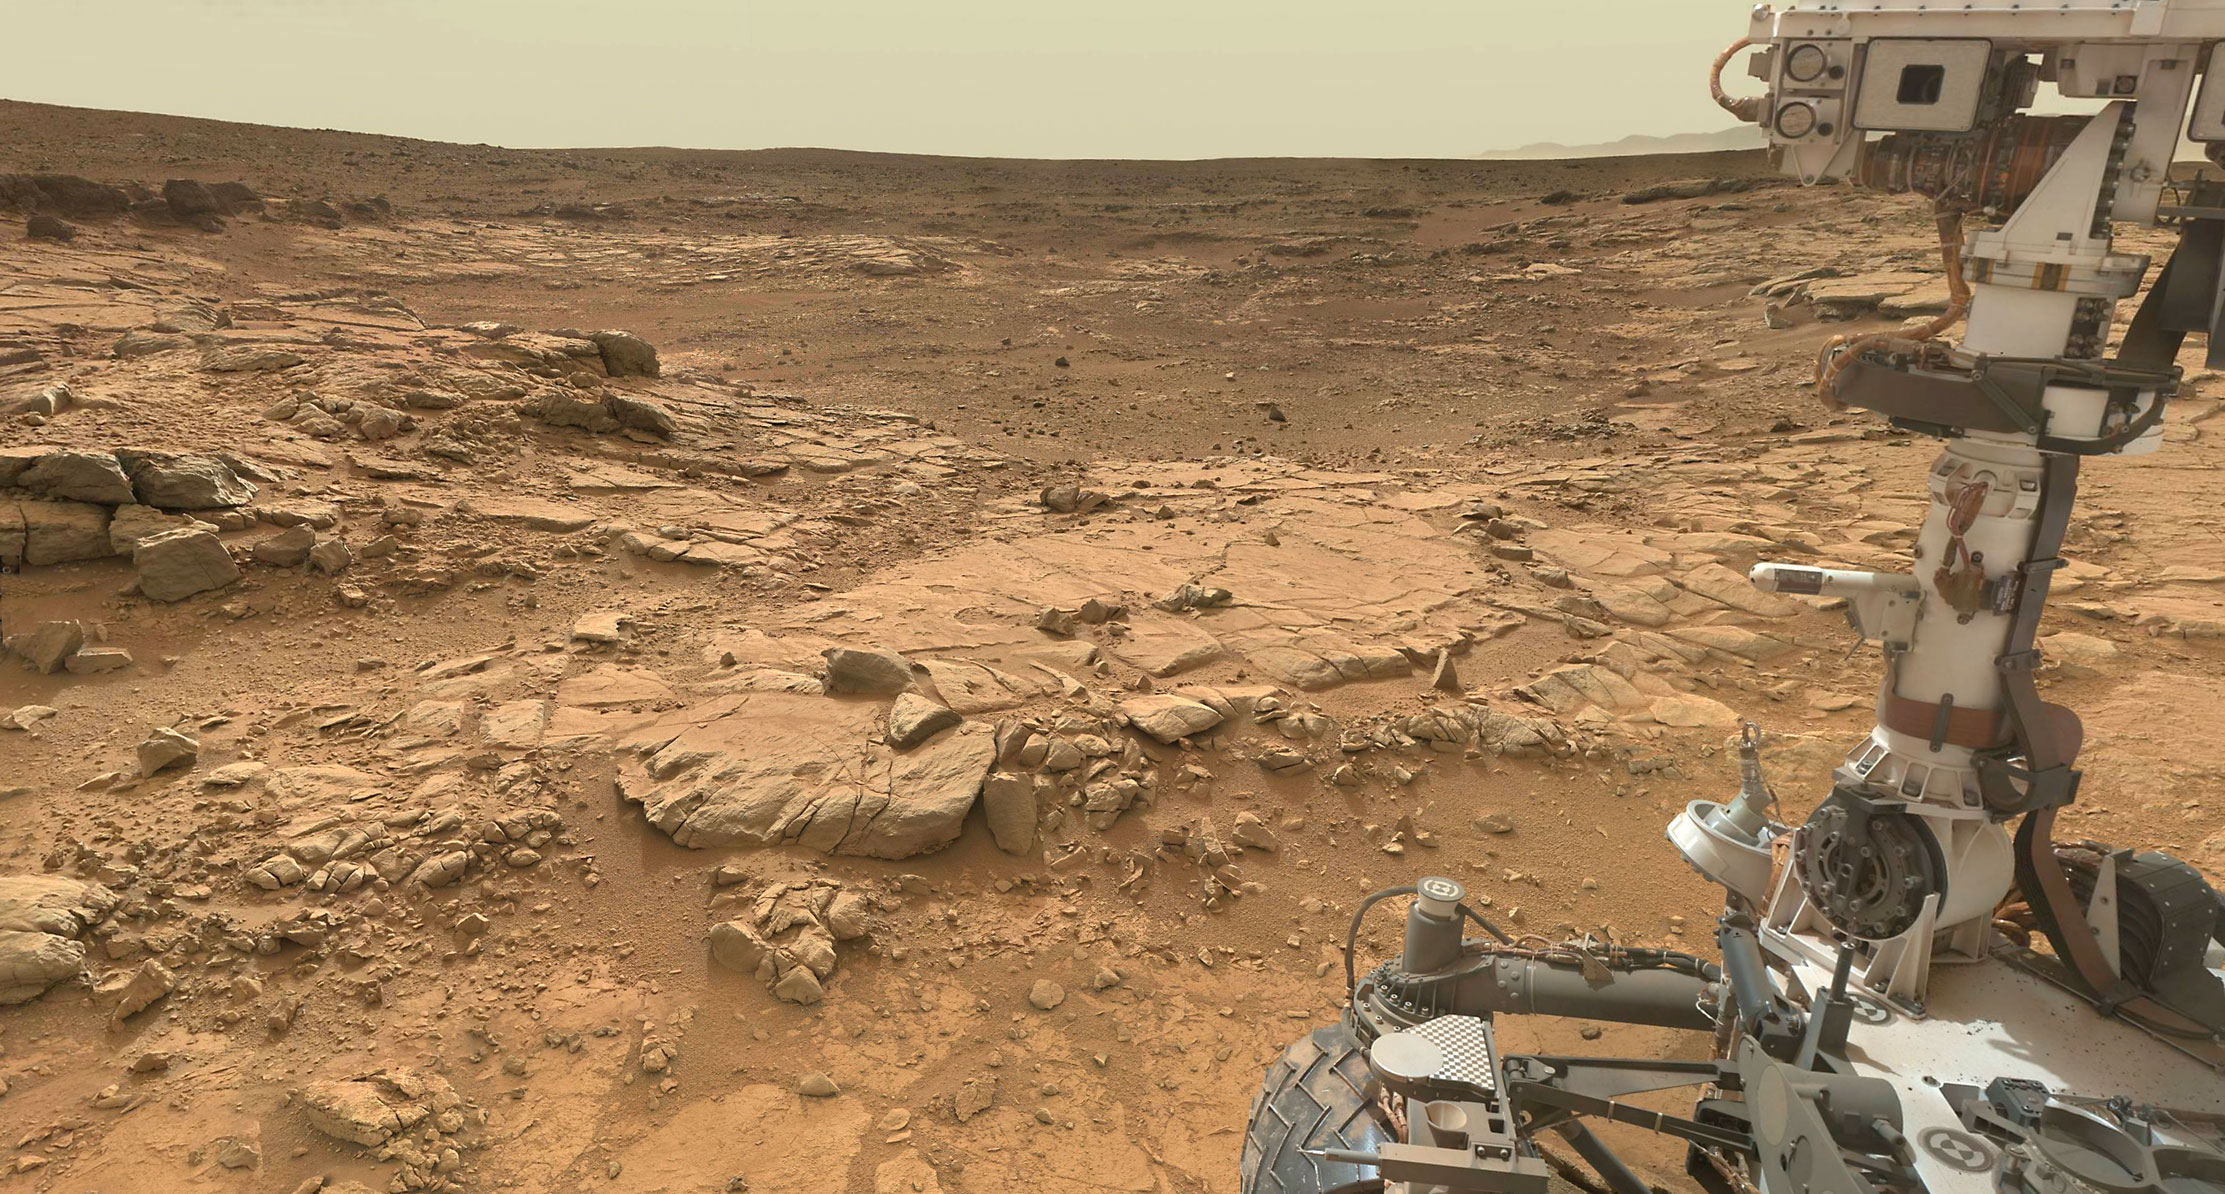 nasa curiosity rover pictures - HD2225×1194